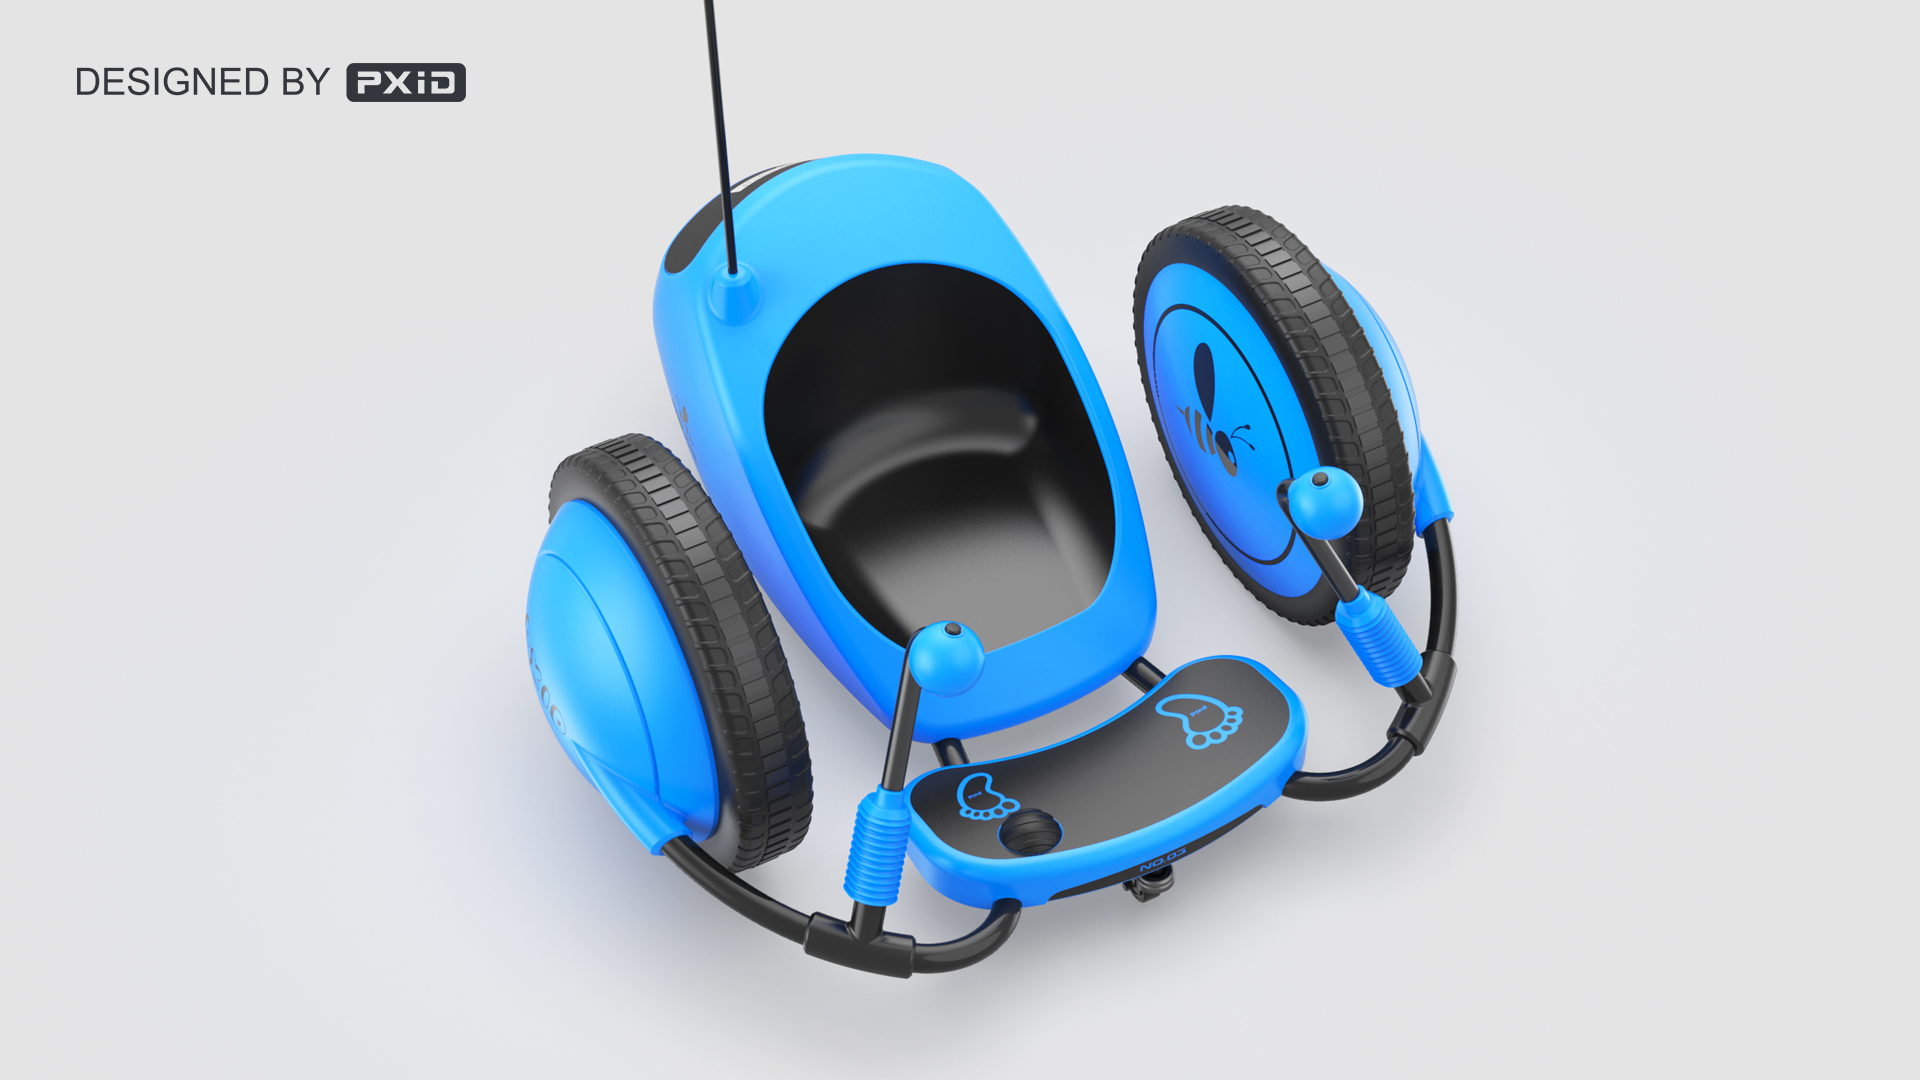 PXID designed Children's drift scooter